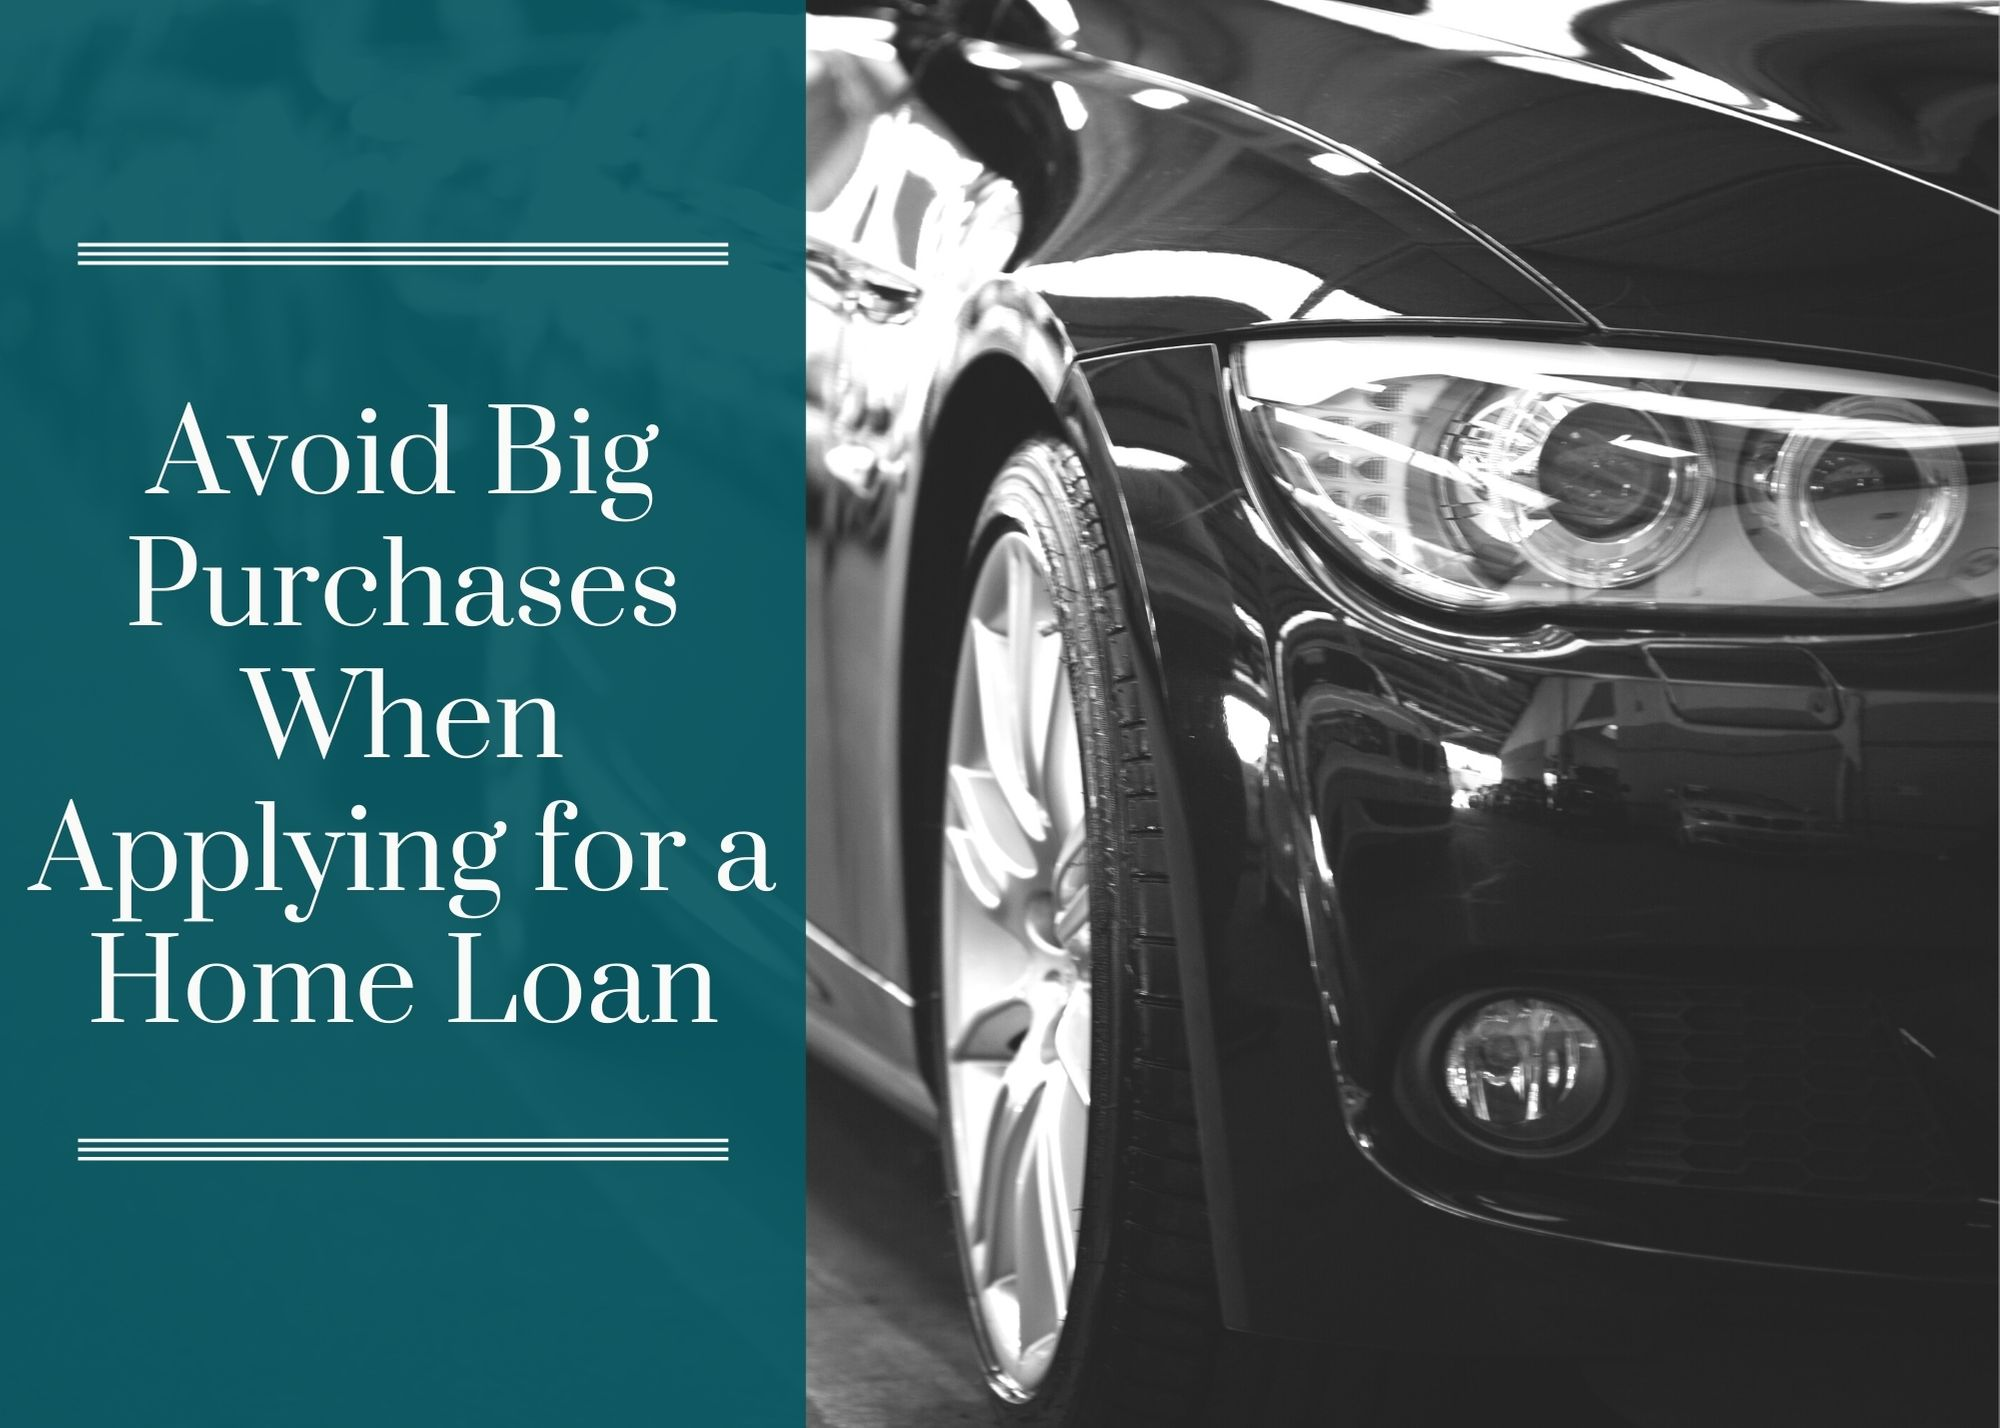 Avoid Big Purchases When Applying for a Home Loan